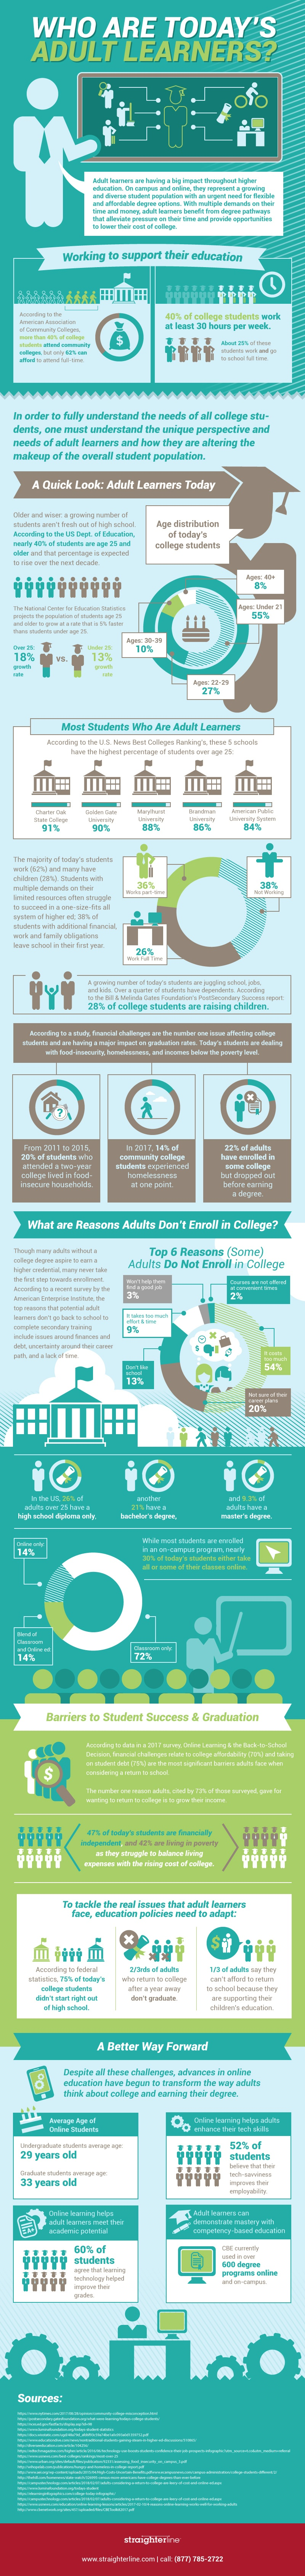 Who Are Today's Adult Learners Infographic